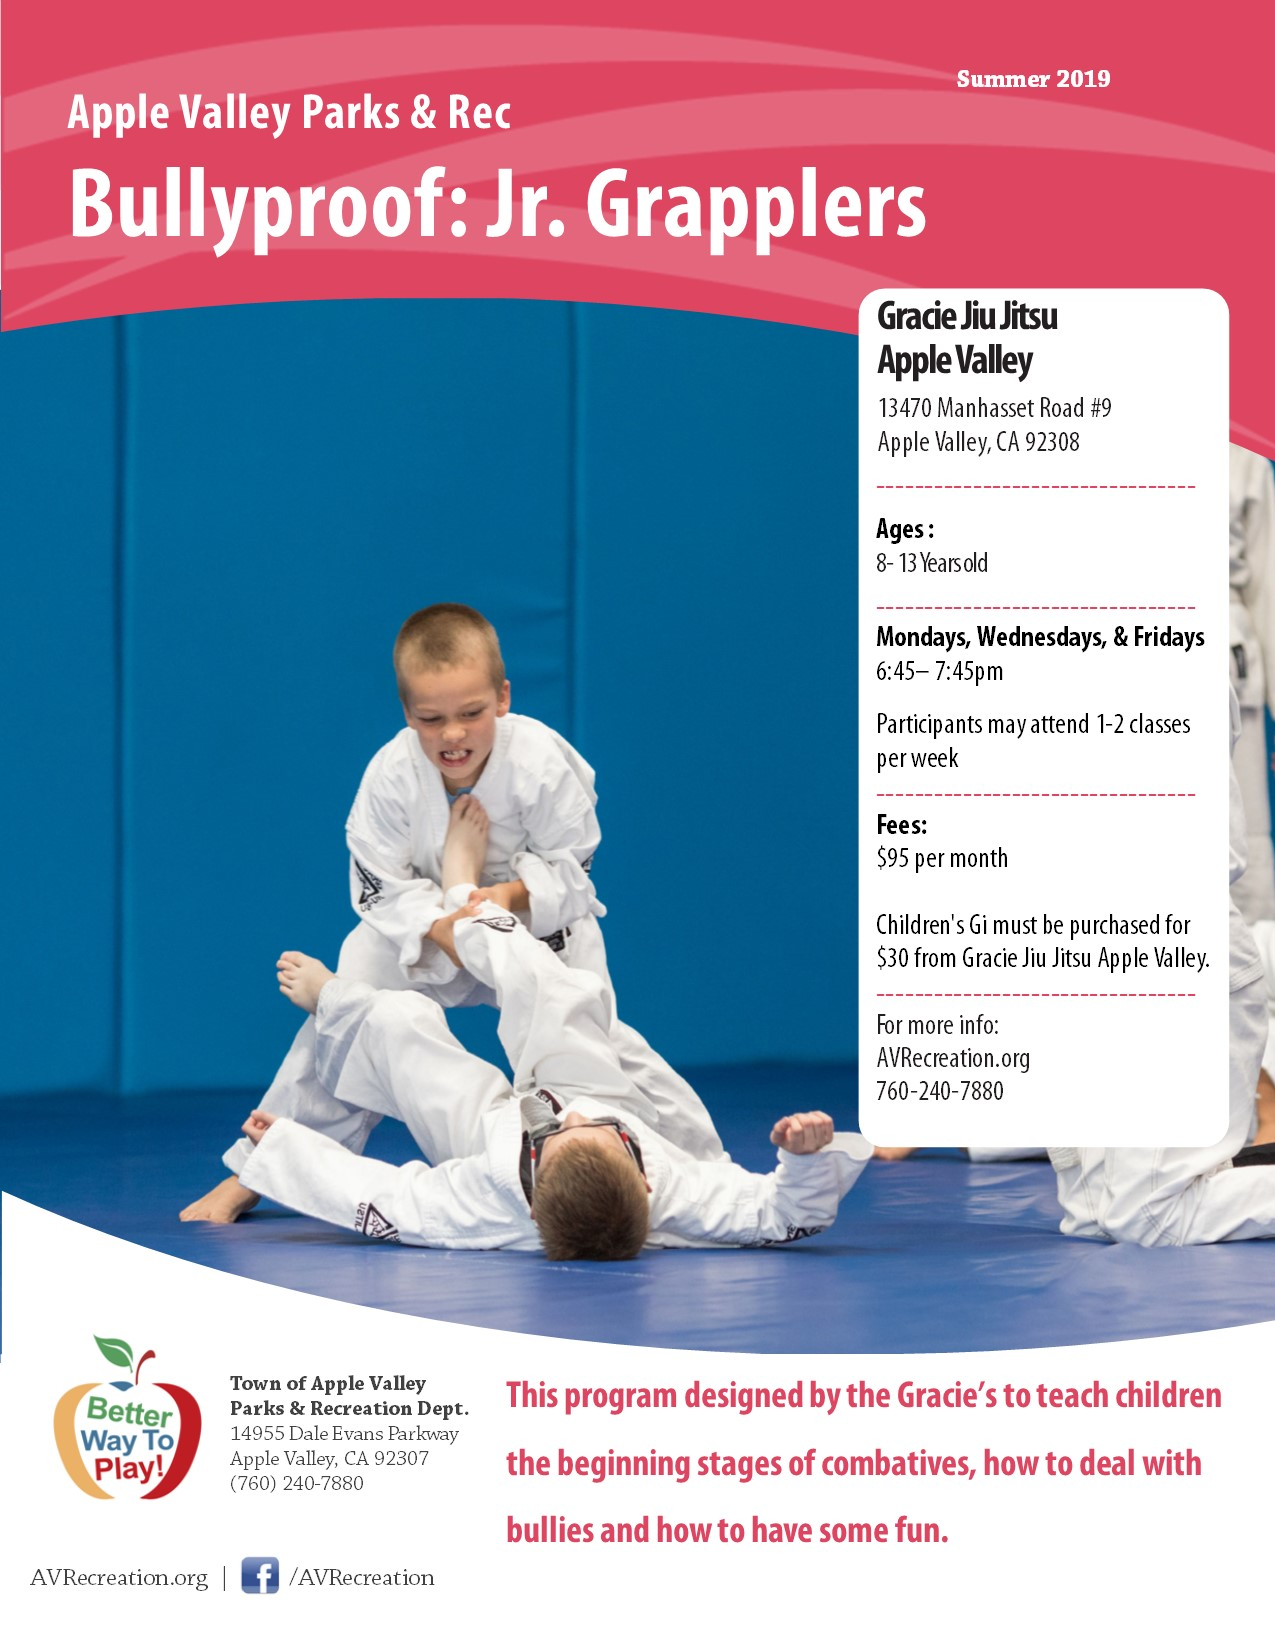 Gracie Bullyproof Jr. Grapplers